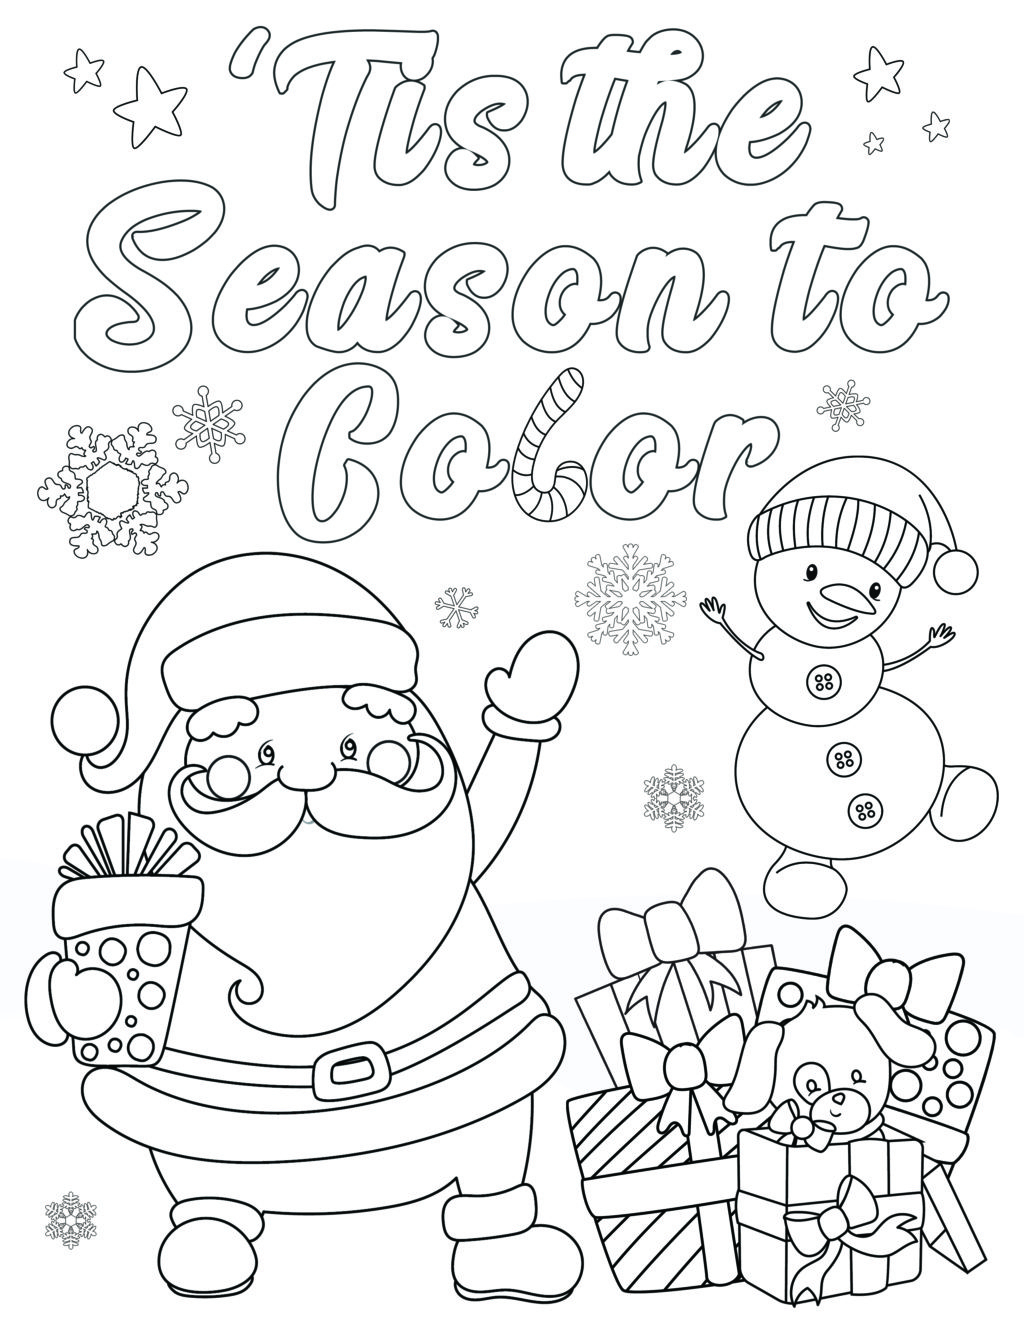 Jesus Christmas Coloring Pages Coloring Books Coloring Books Christmas Paper For Kids Ba Jesus